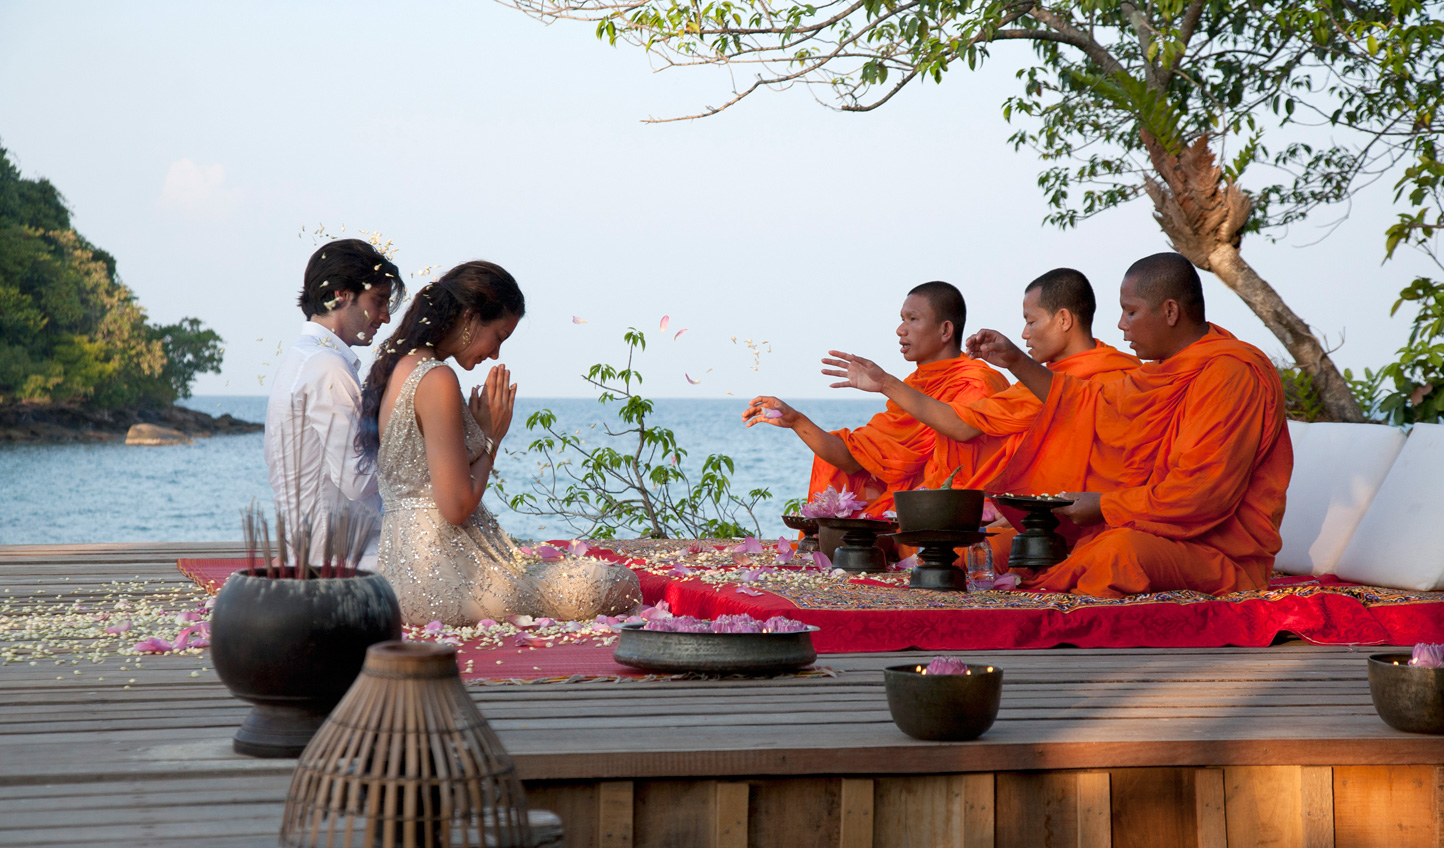 Connect with local culture with a blessing from the monks